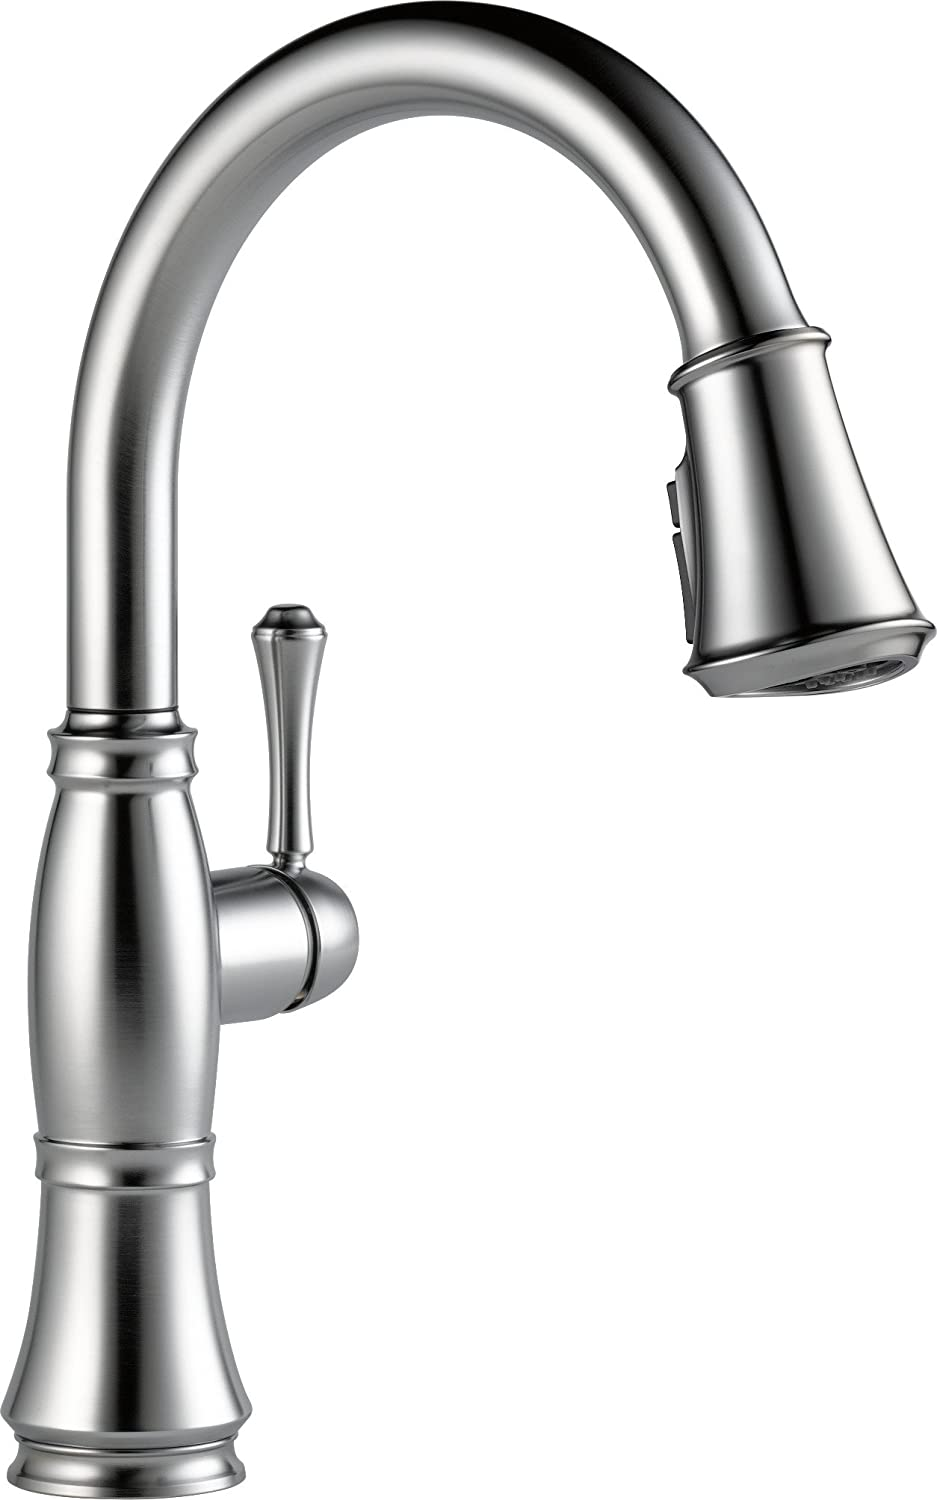 Delta Faucet Cassidy Single-Handle Kitchen Sink Faucet with Pull Down Sprayer, ShieldSpray Technology and Magnetic Docking Spray Head, Arctic Stainless 9197-AR-DST